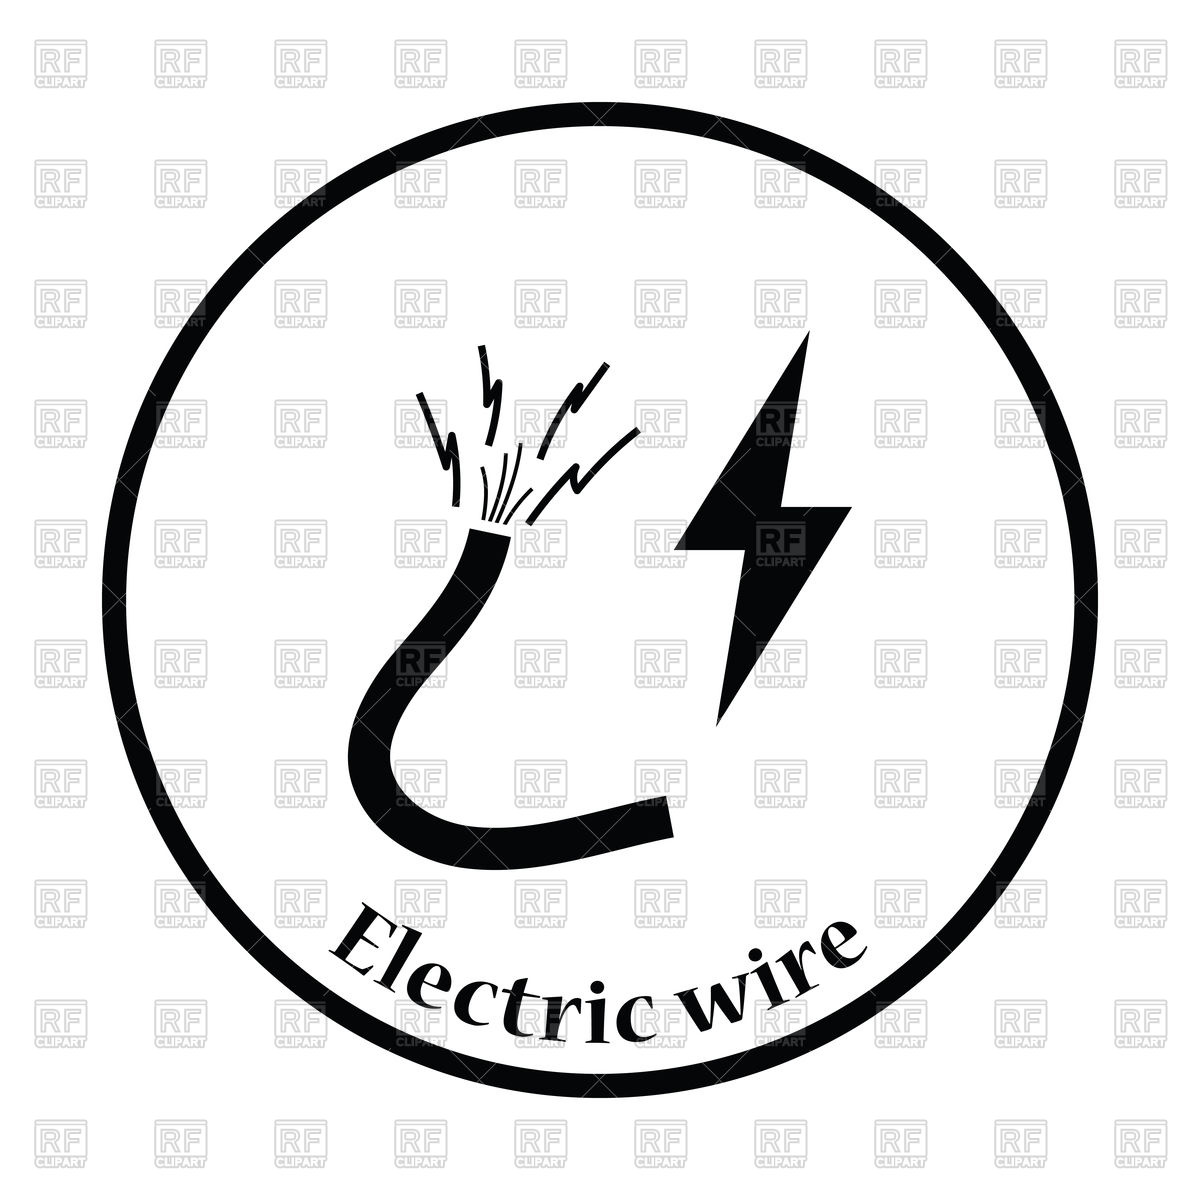 1200x1200 Thin Circle Design Icon Of Electric Wire Vector Image Vector